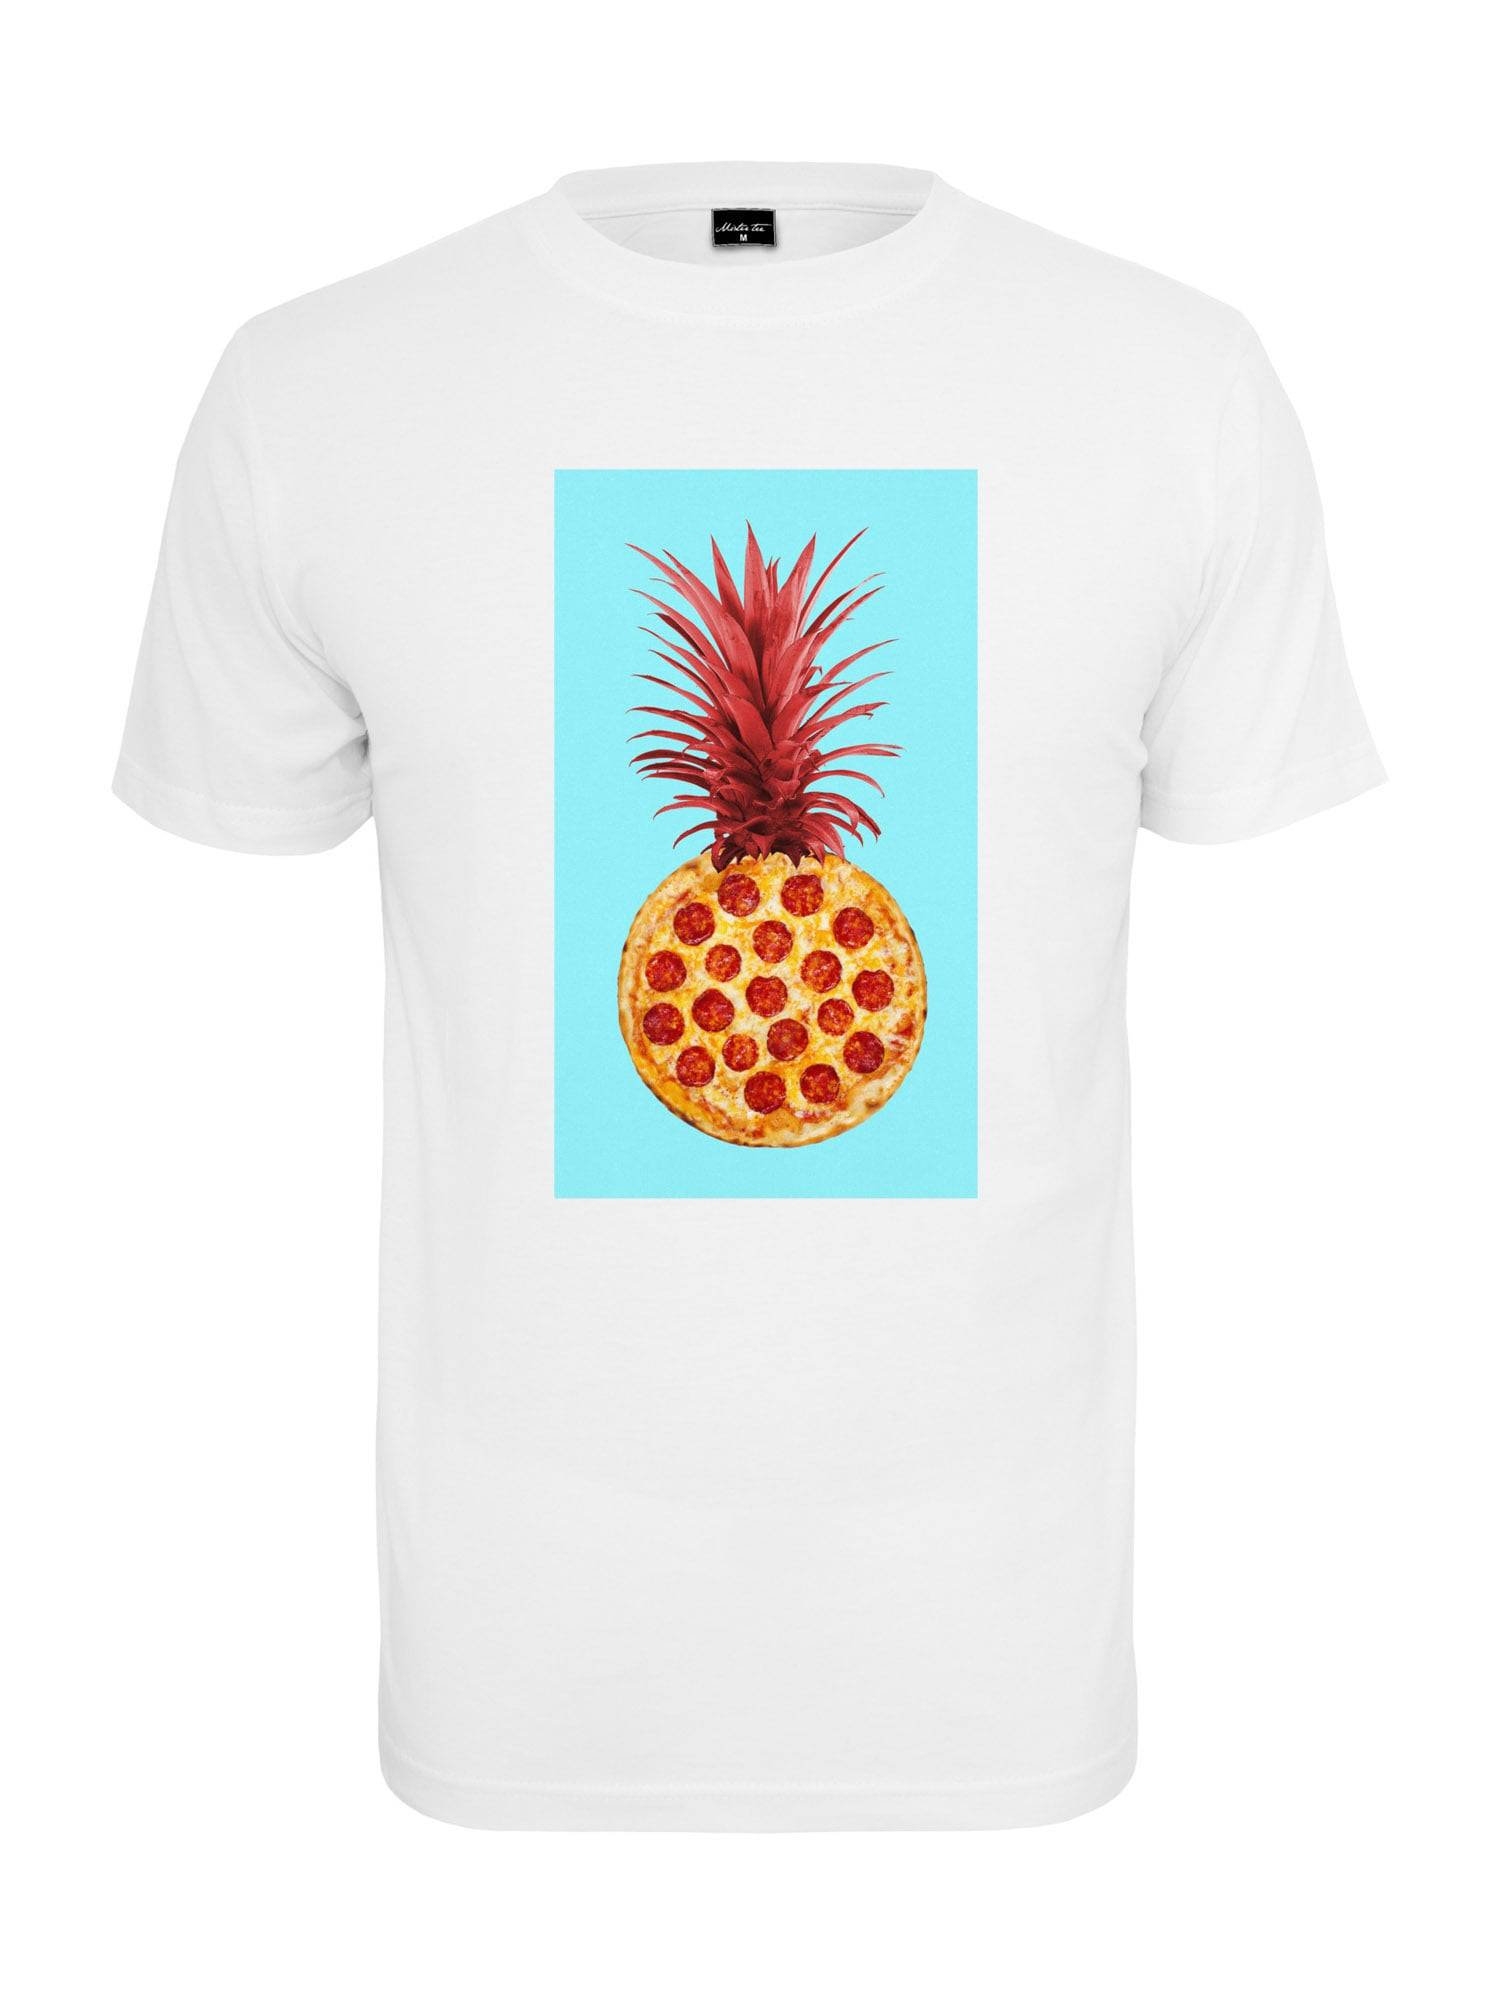 Tee T-Shirt 'Pizza Pineapple'  - Blanc - Taille: XL - male